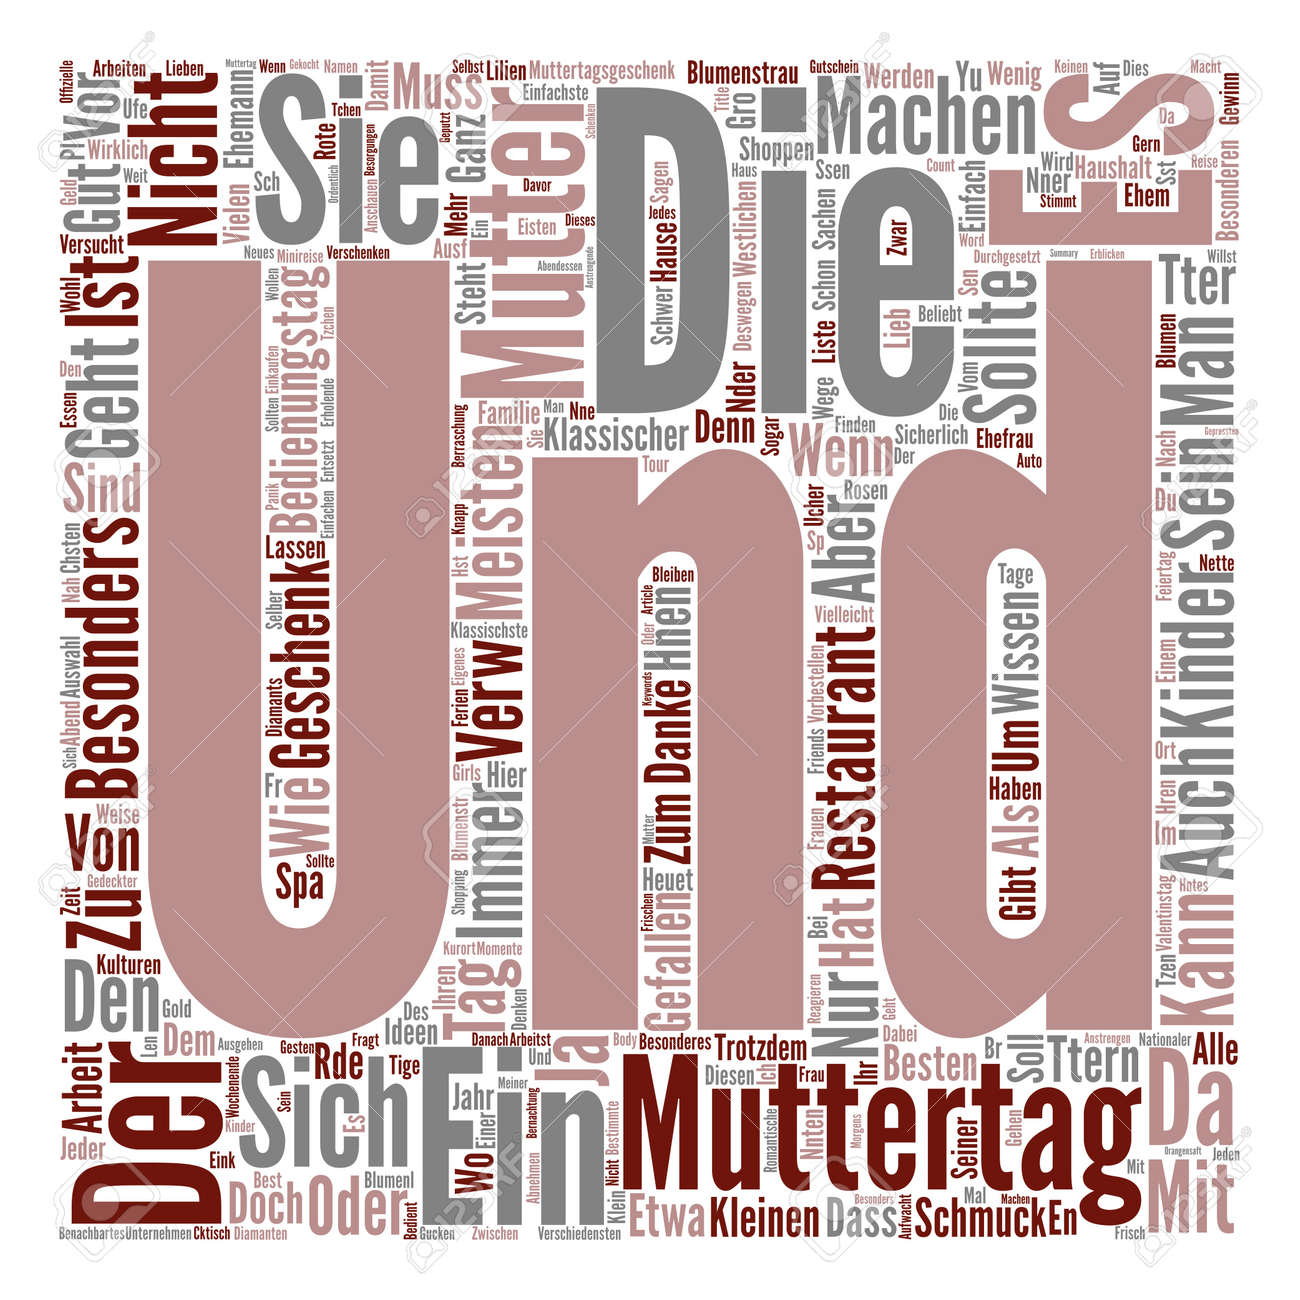 Ideen Muttertag muttertag geschenke ideen text background word cloud concept royalty